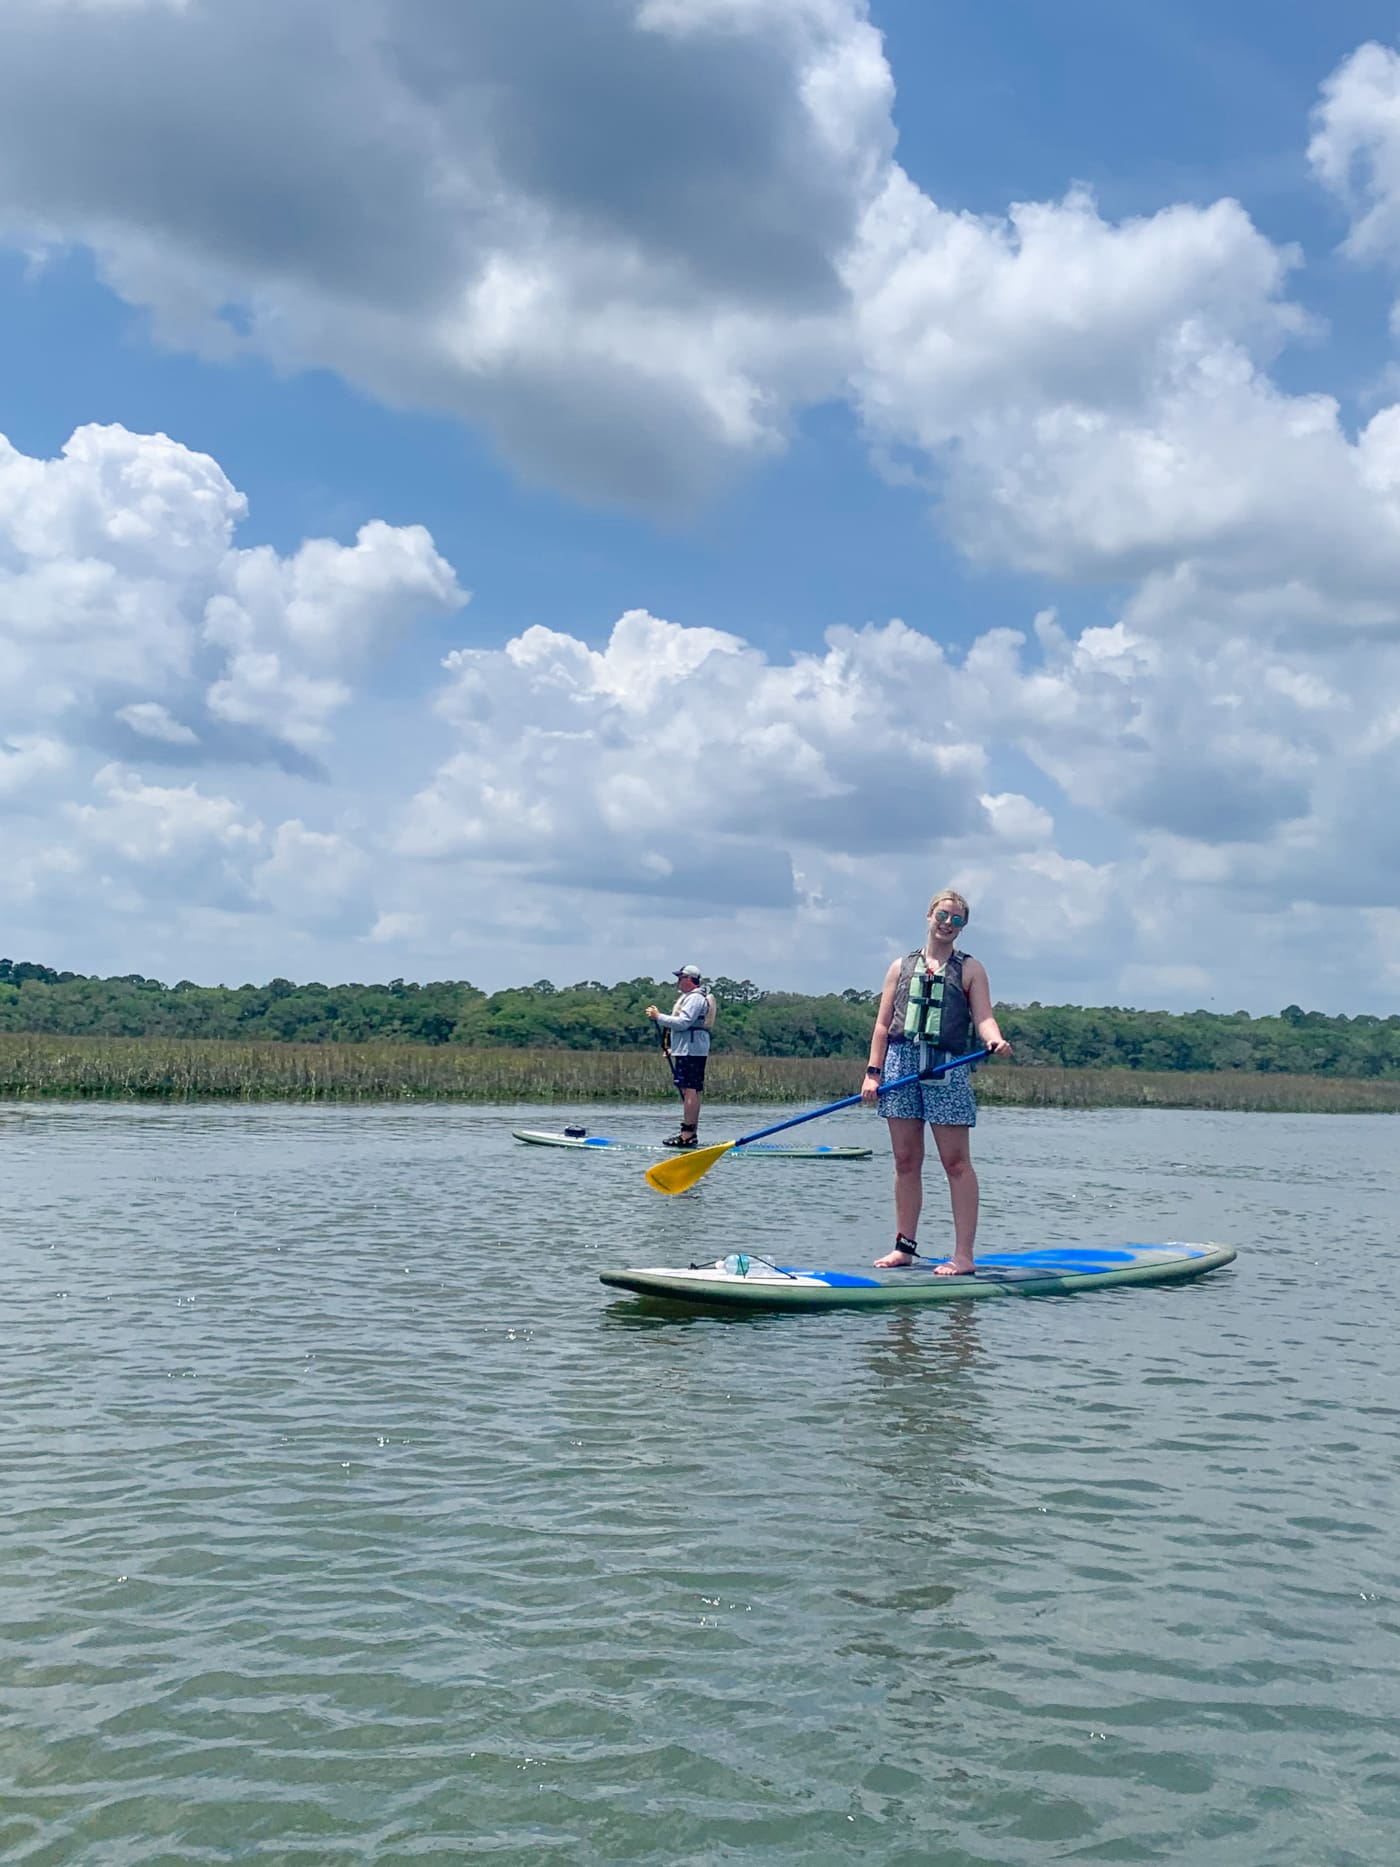 two people on paddleboards in water